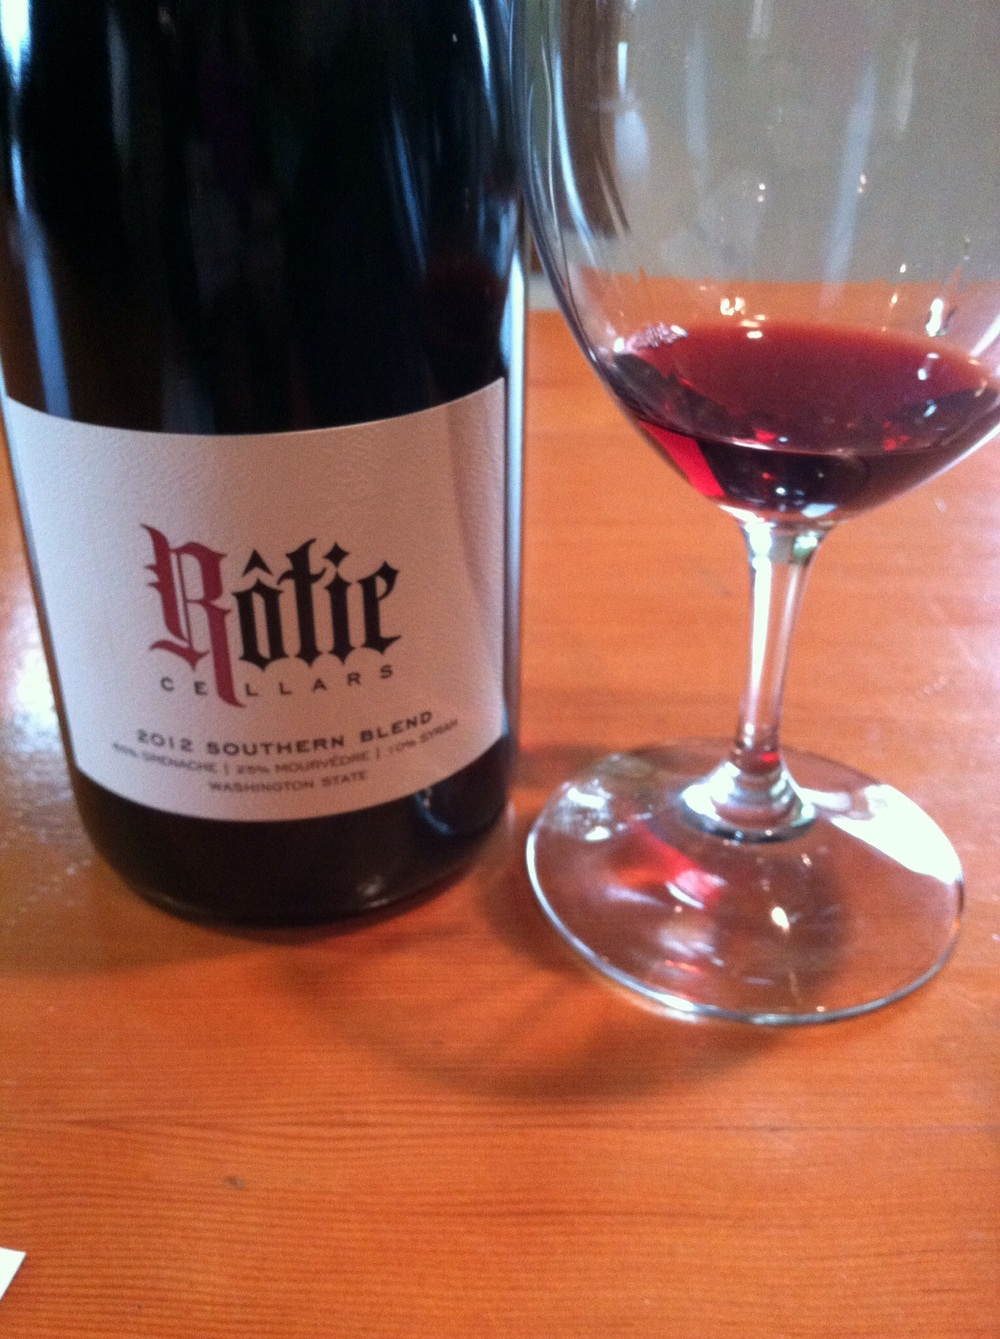 Rotie Cellars Southern Blend, 2012.  Photo by Shana Sokol, Shana Speaks Wine.